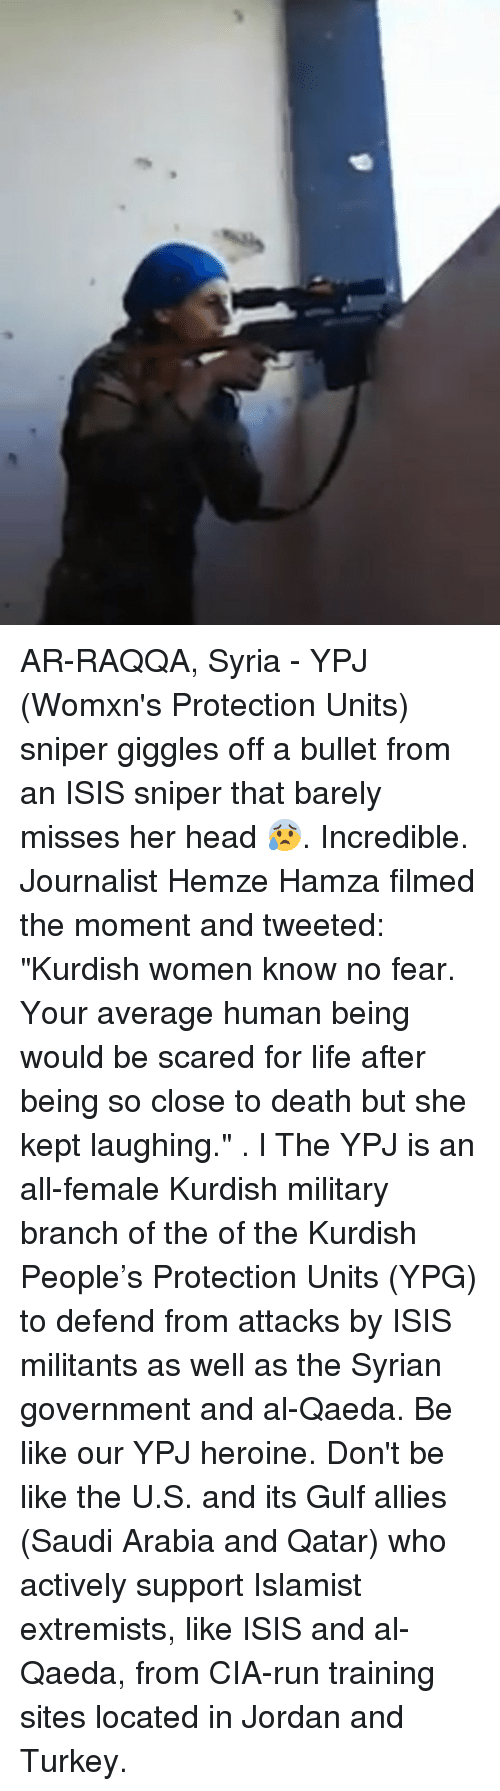 """Be Like, Head, and Isis: AR-RAQQA, Syria - YPJ (Womxn's Protection Units) sniper giggles off a bullet from an ISIS sniper that barely misses her head 😰. Incredible. Journalist Hemze Hamza filmed the moment and tweeted: """"Kurdish women know no fear. Your average human being would be scared for life after being so close to death but she kept laughing."""" . l The YPJ is an all-female Kurdish military branch of the of the Kurdish People's Protection Units (YPG) to defend from attacks by ISIS militants as well as the Syrian government and al-Qaeda. Be like our YPJ heroine. Don't be like the U.S. and its Gulf allies (Saudi Arabia and Qatar) who actively support Islamist extremists, like ISIS and al-Qaeda, from CIA-run training sites located in Jordan and Turkey."""